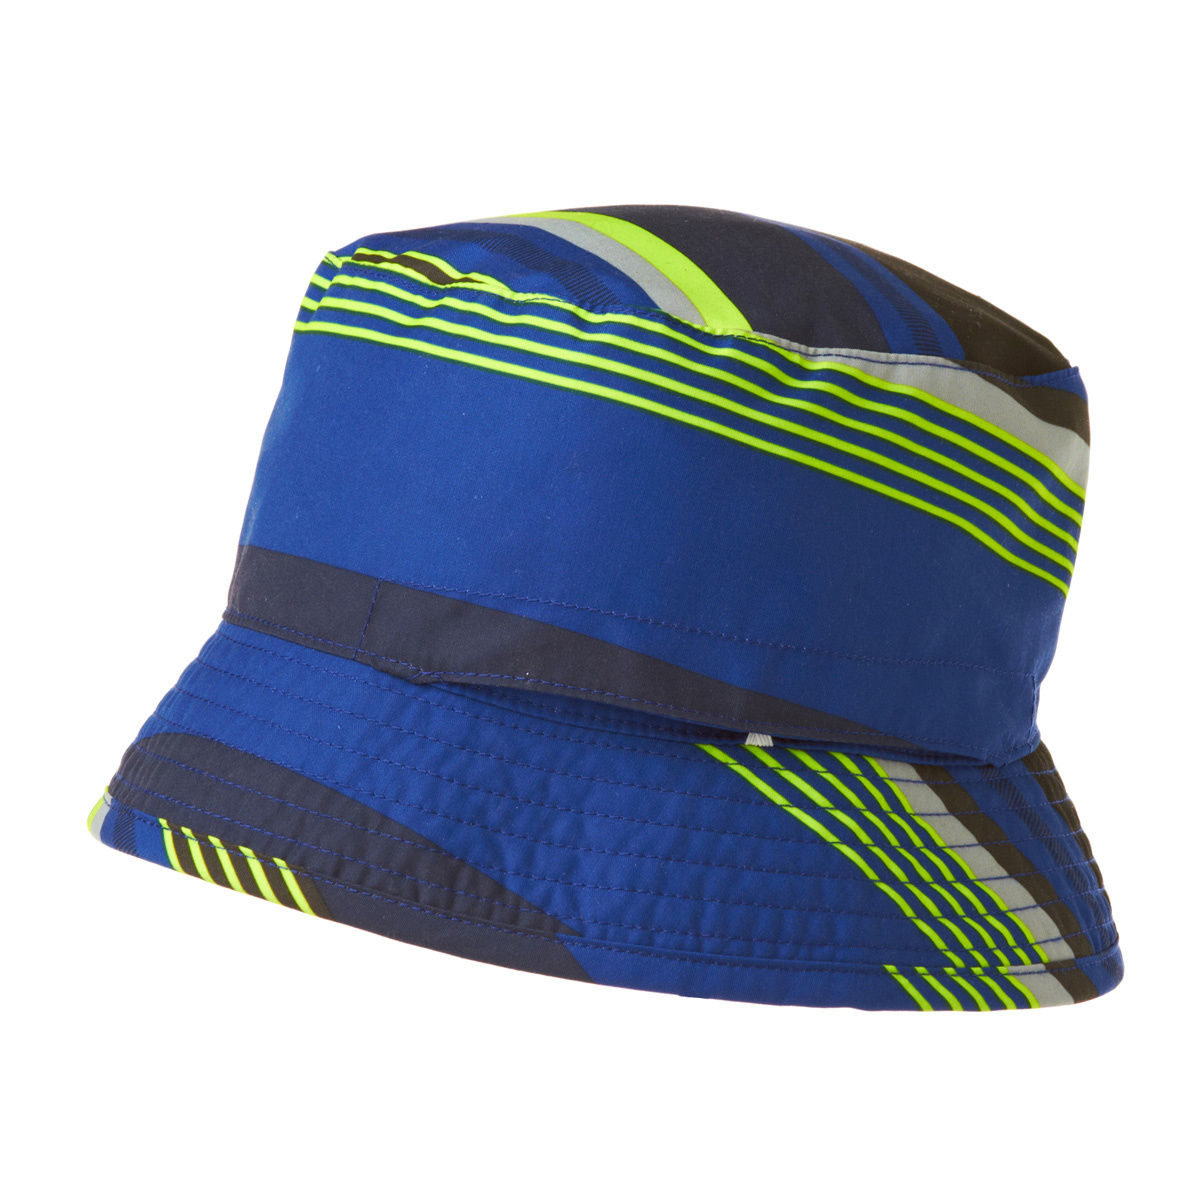 the-north-face-hats-the-north-face-youth-sun-stash-hat-honor-blue-stripe